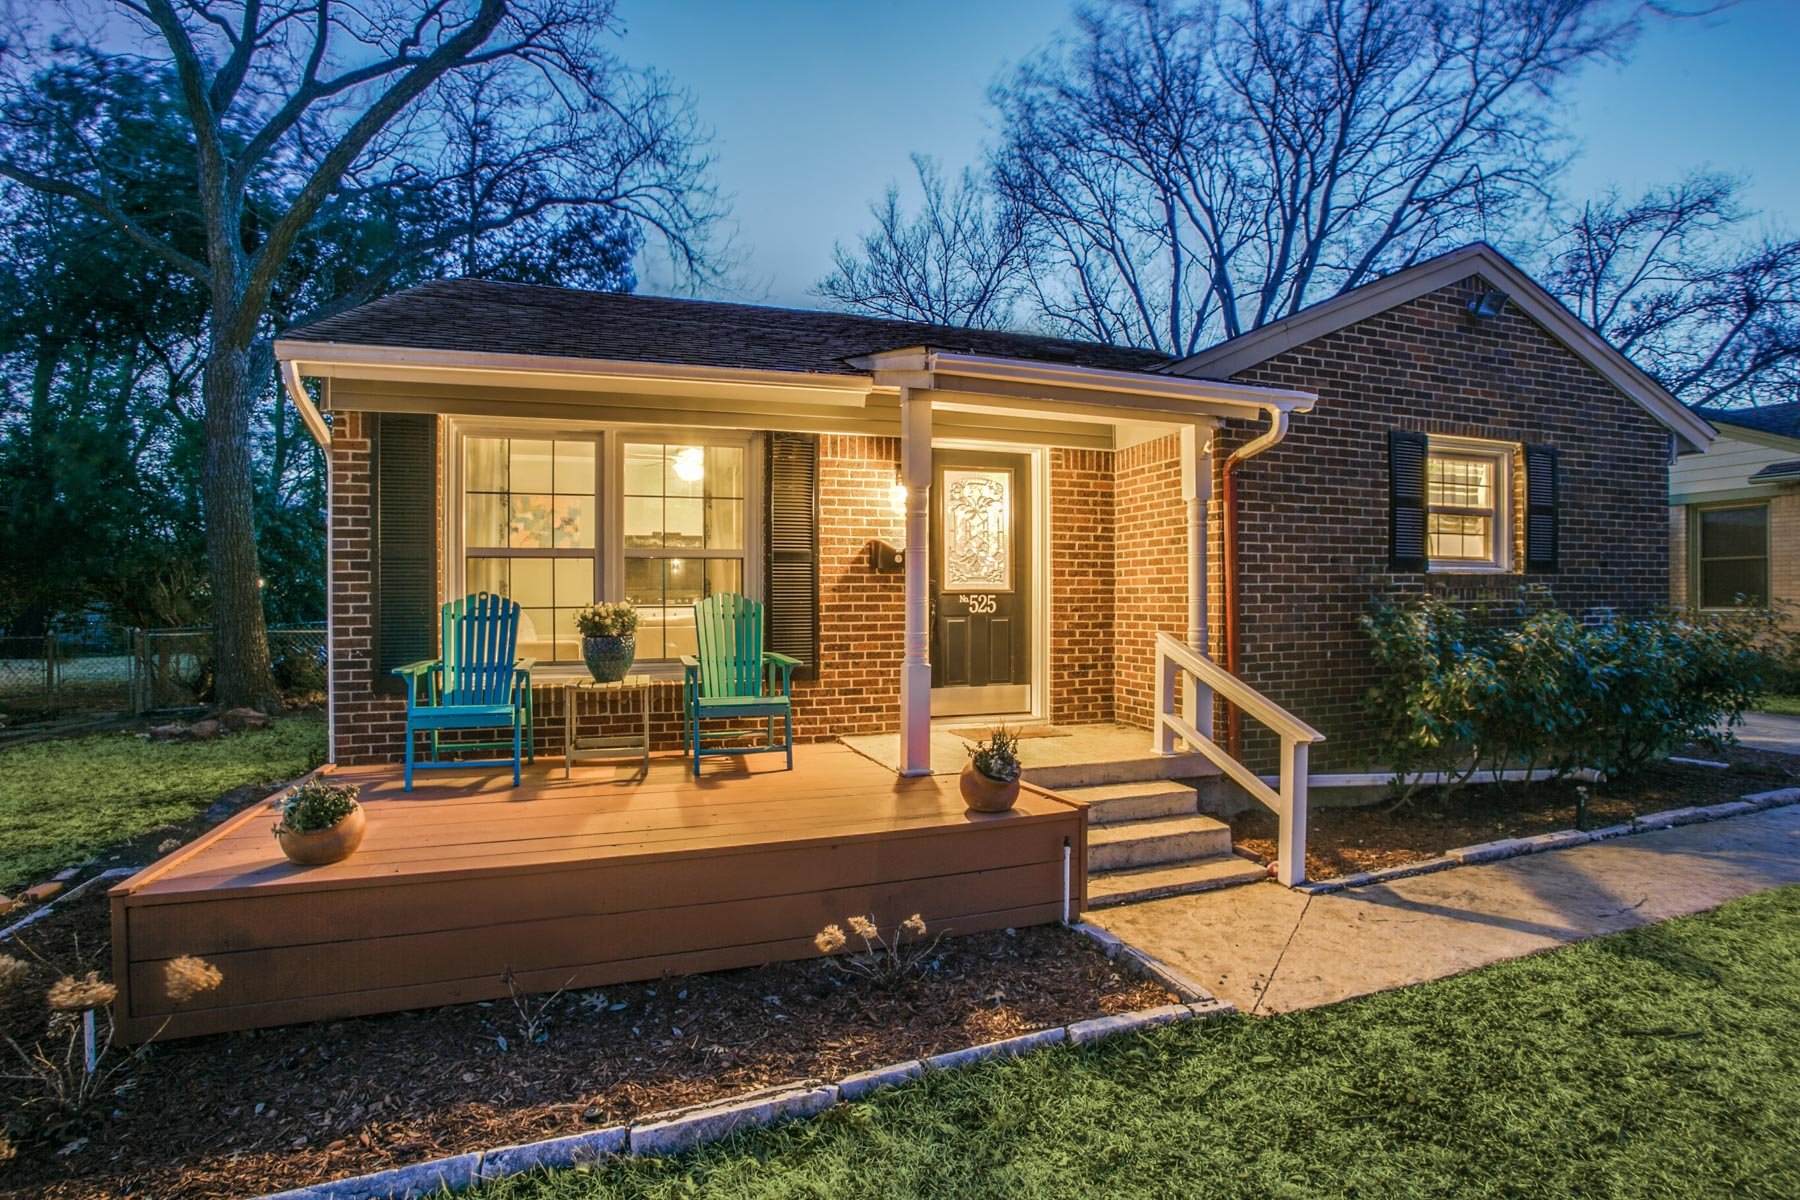 Single Family Home for Sale at Charming in Lake Highlands 525 Parkhurst Drive, Dallas, Texas, 75218 United States